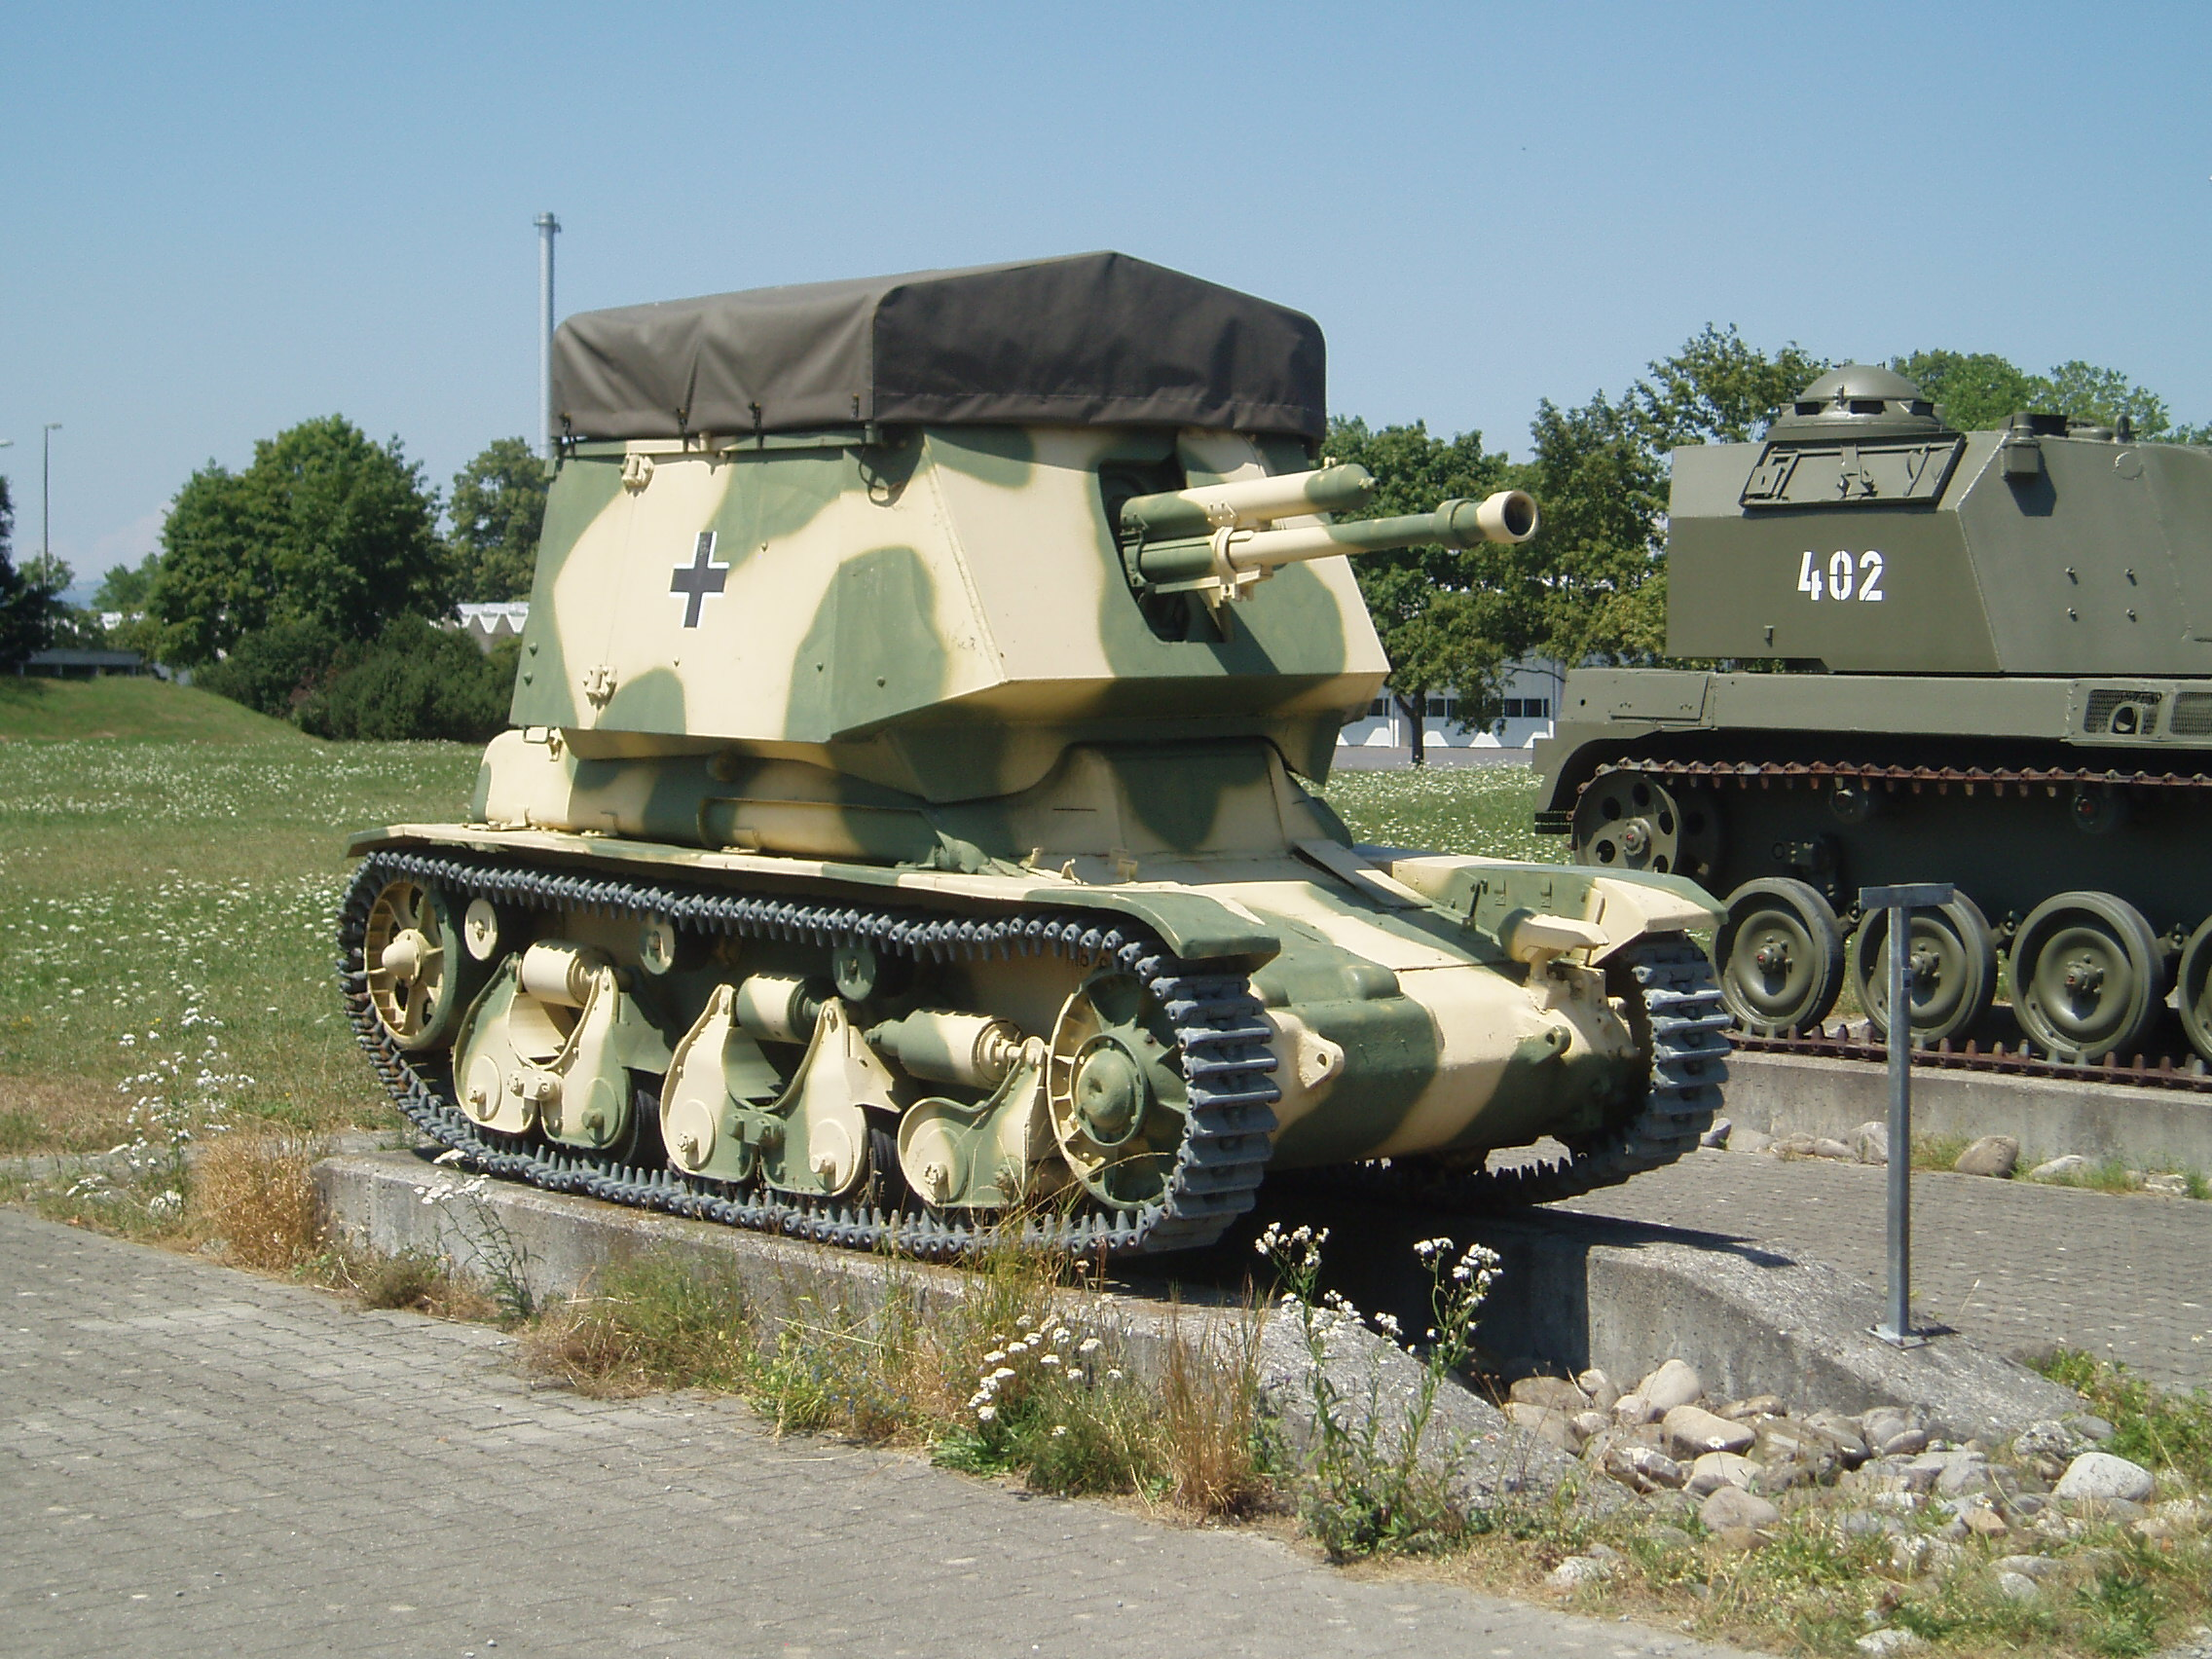 Panzerjäger I based on the R-35 - Wikimedia commons